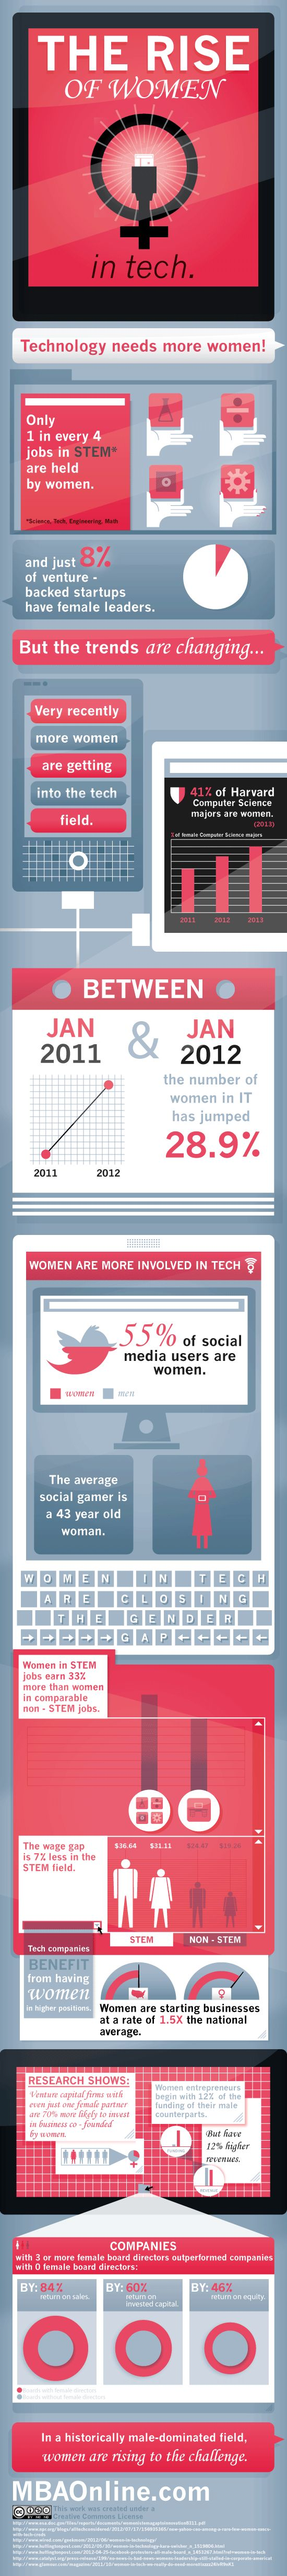 THINGS ARE CHANGING - Women in Technology- Infographic